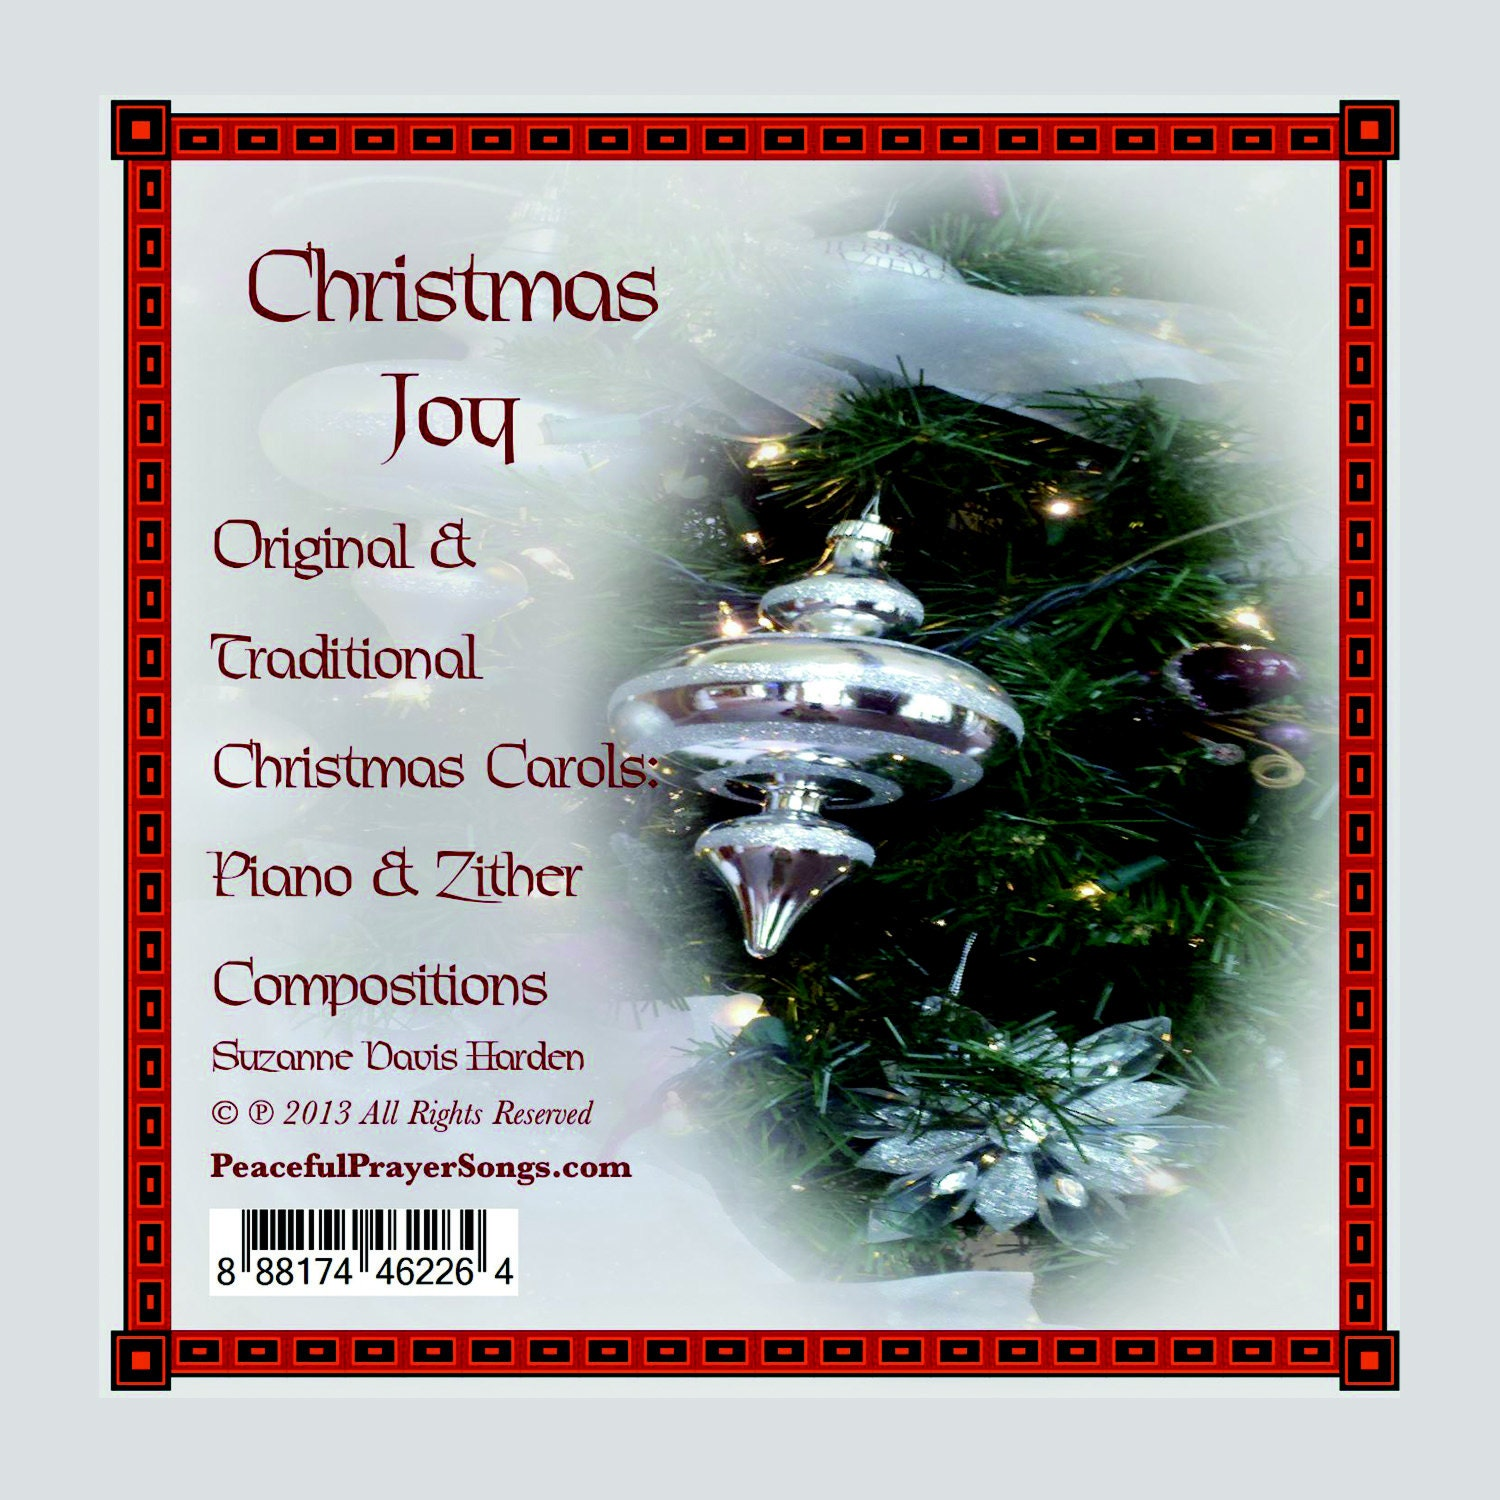 music cd christmas joy songs of peace and joy to fill your heart with the spirit of christmas - Original Christmas Songs